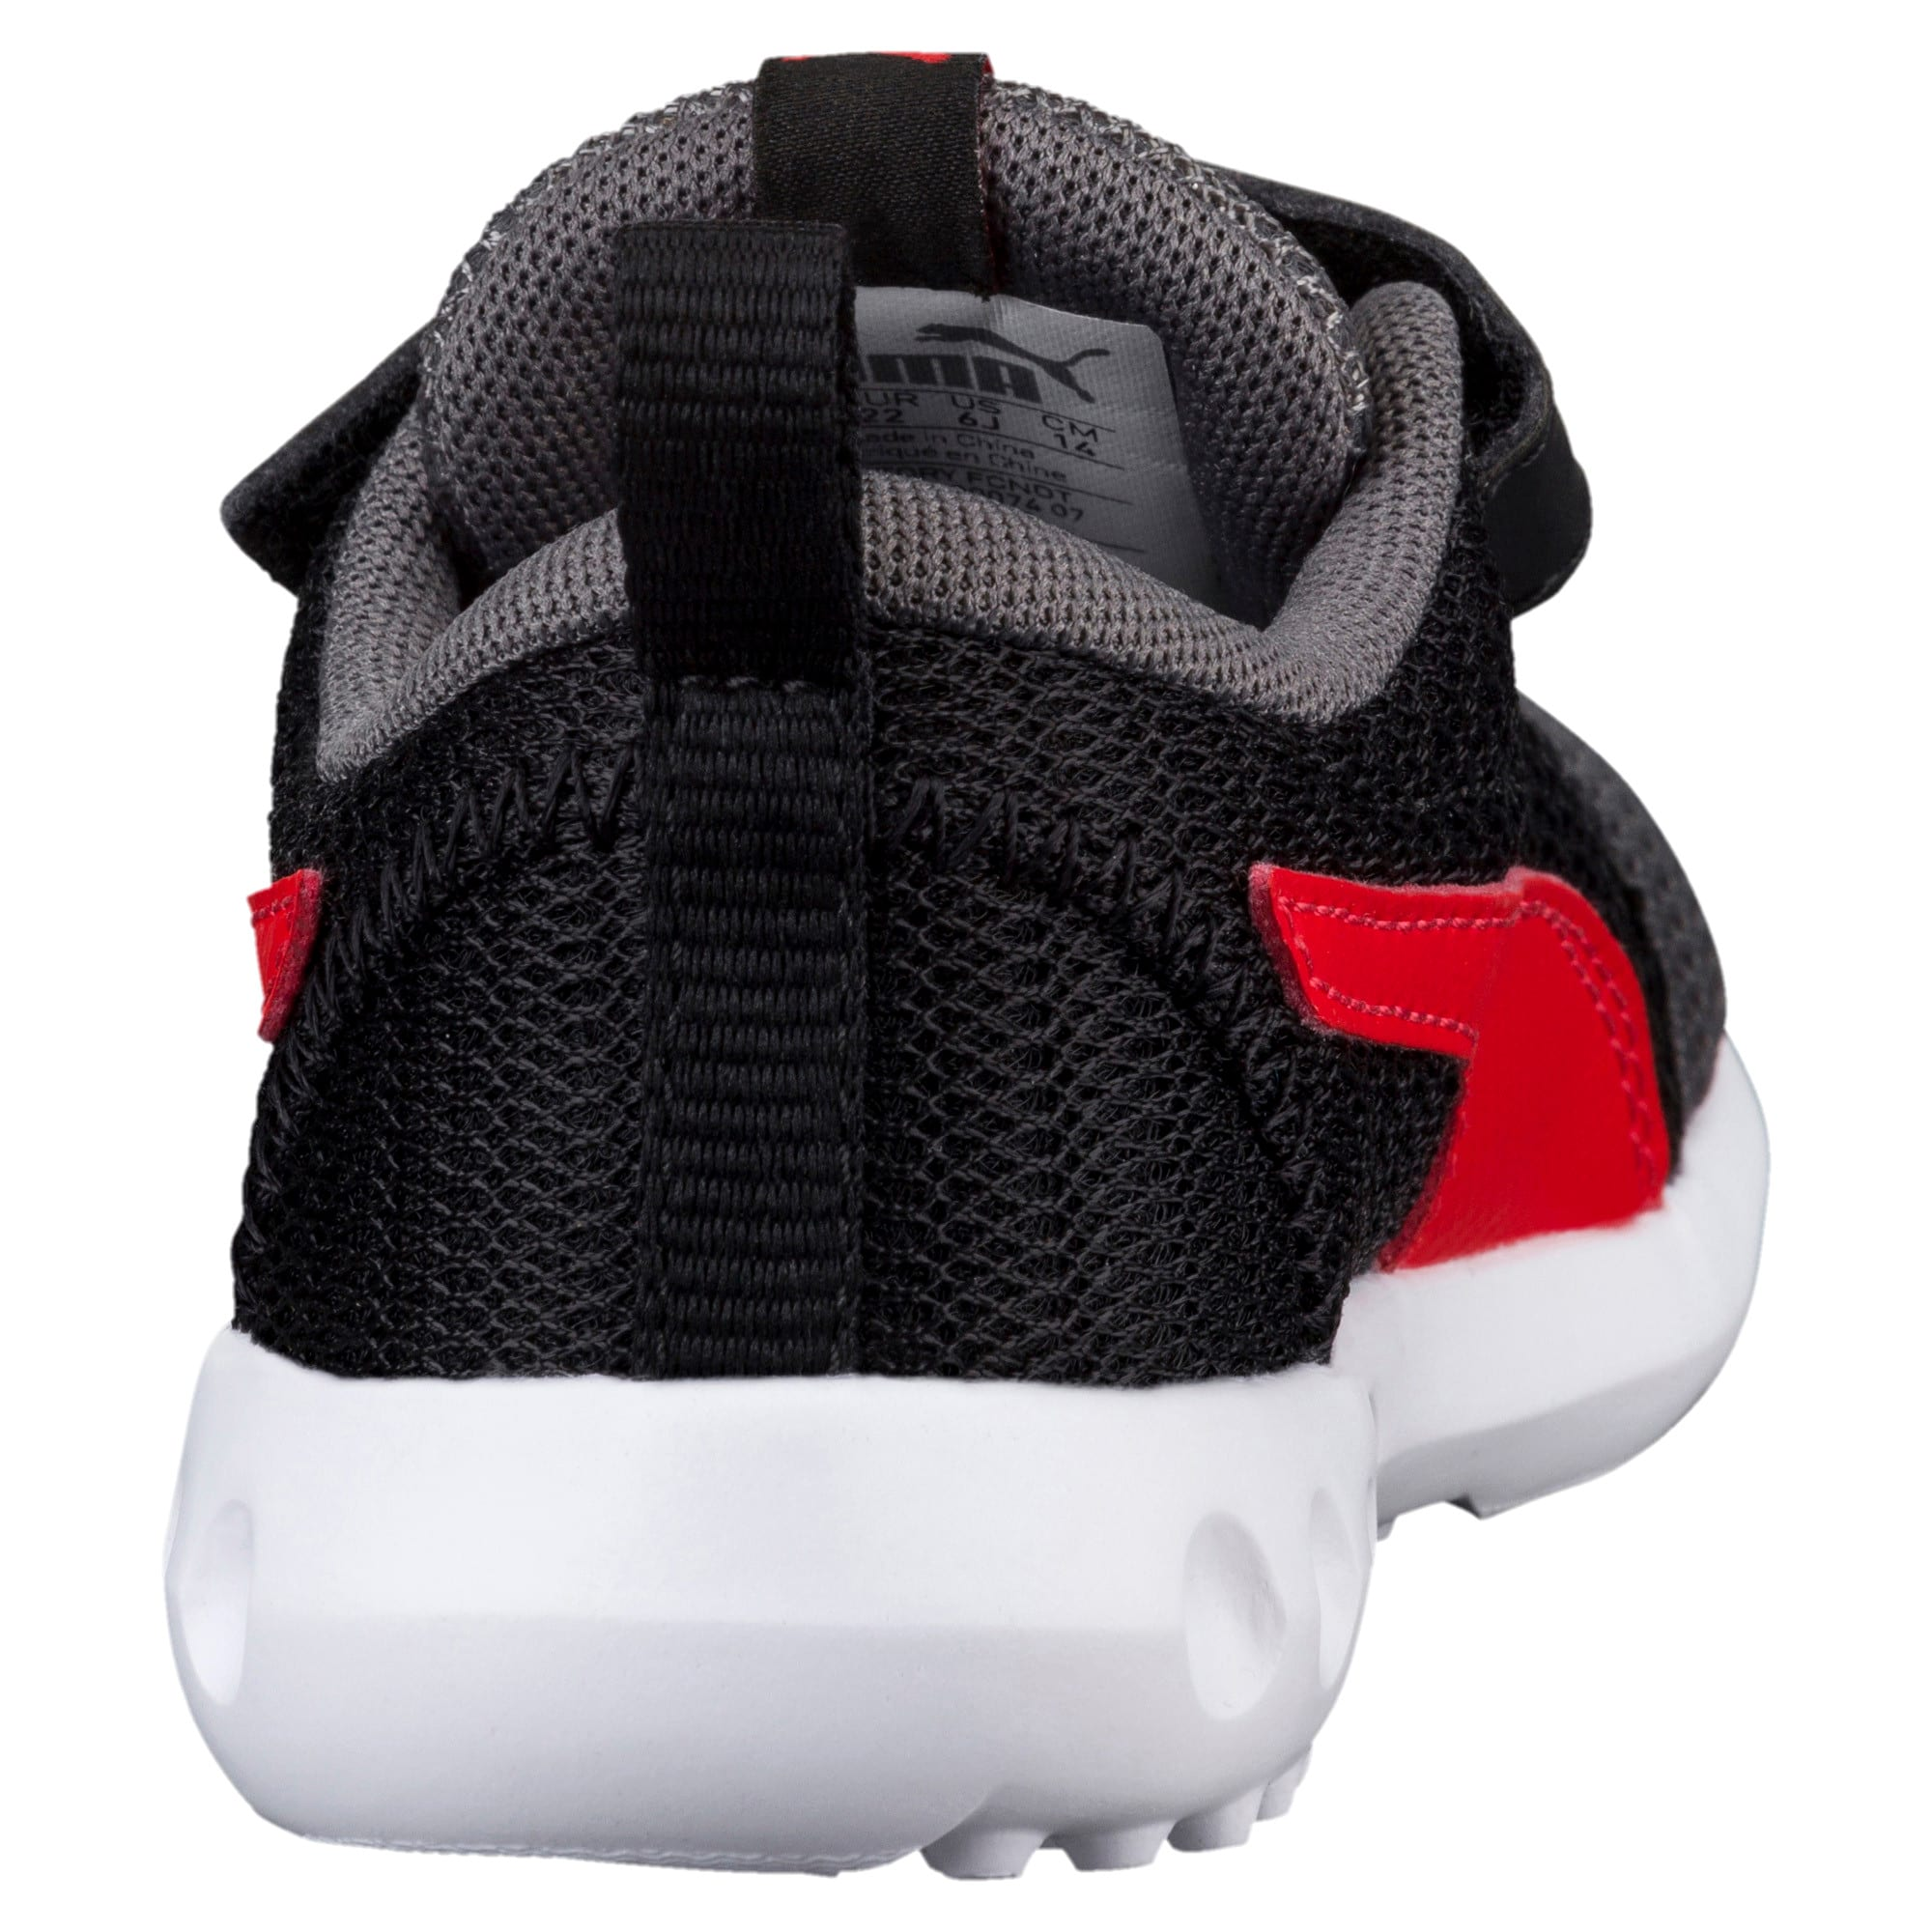 Thumbnail 4 of Carson 2 V Preschool Kids' Trainers, QUIET SHADE-Flame Scarlet, medium-IND